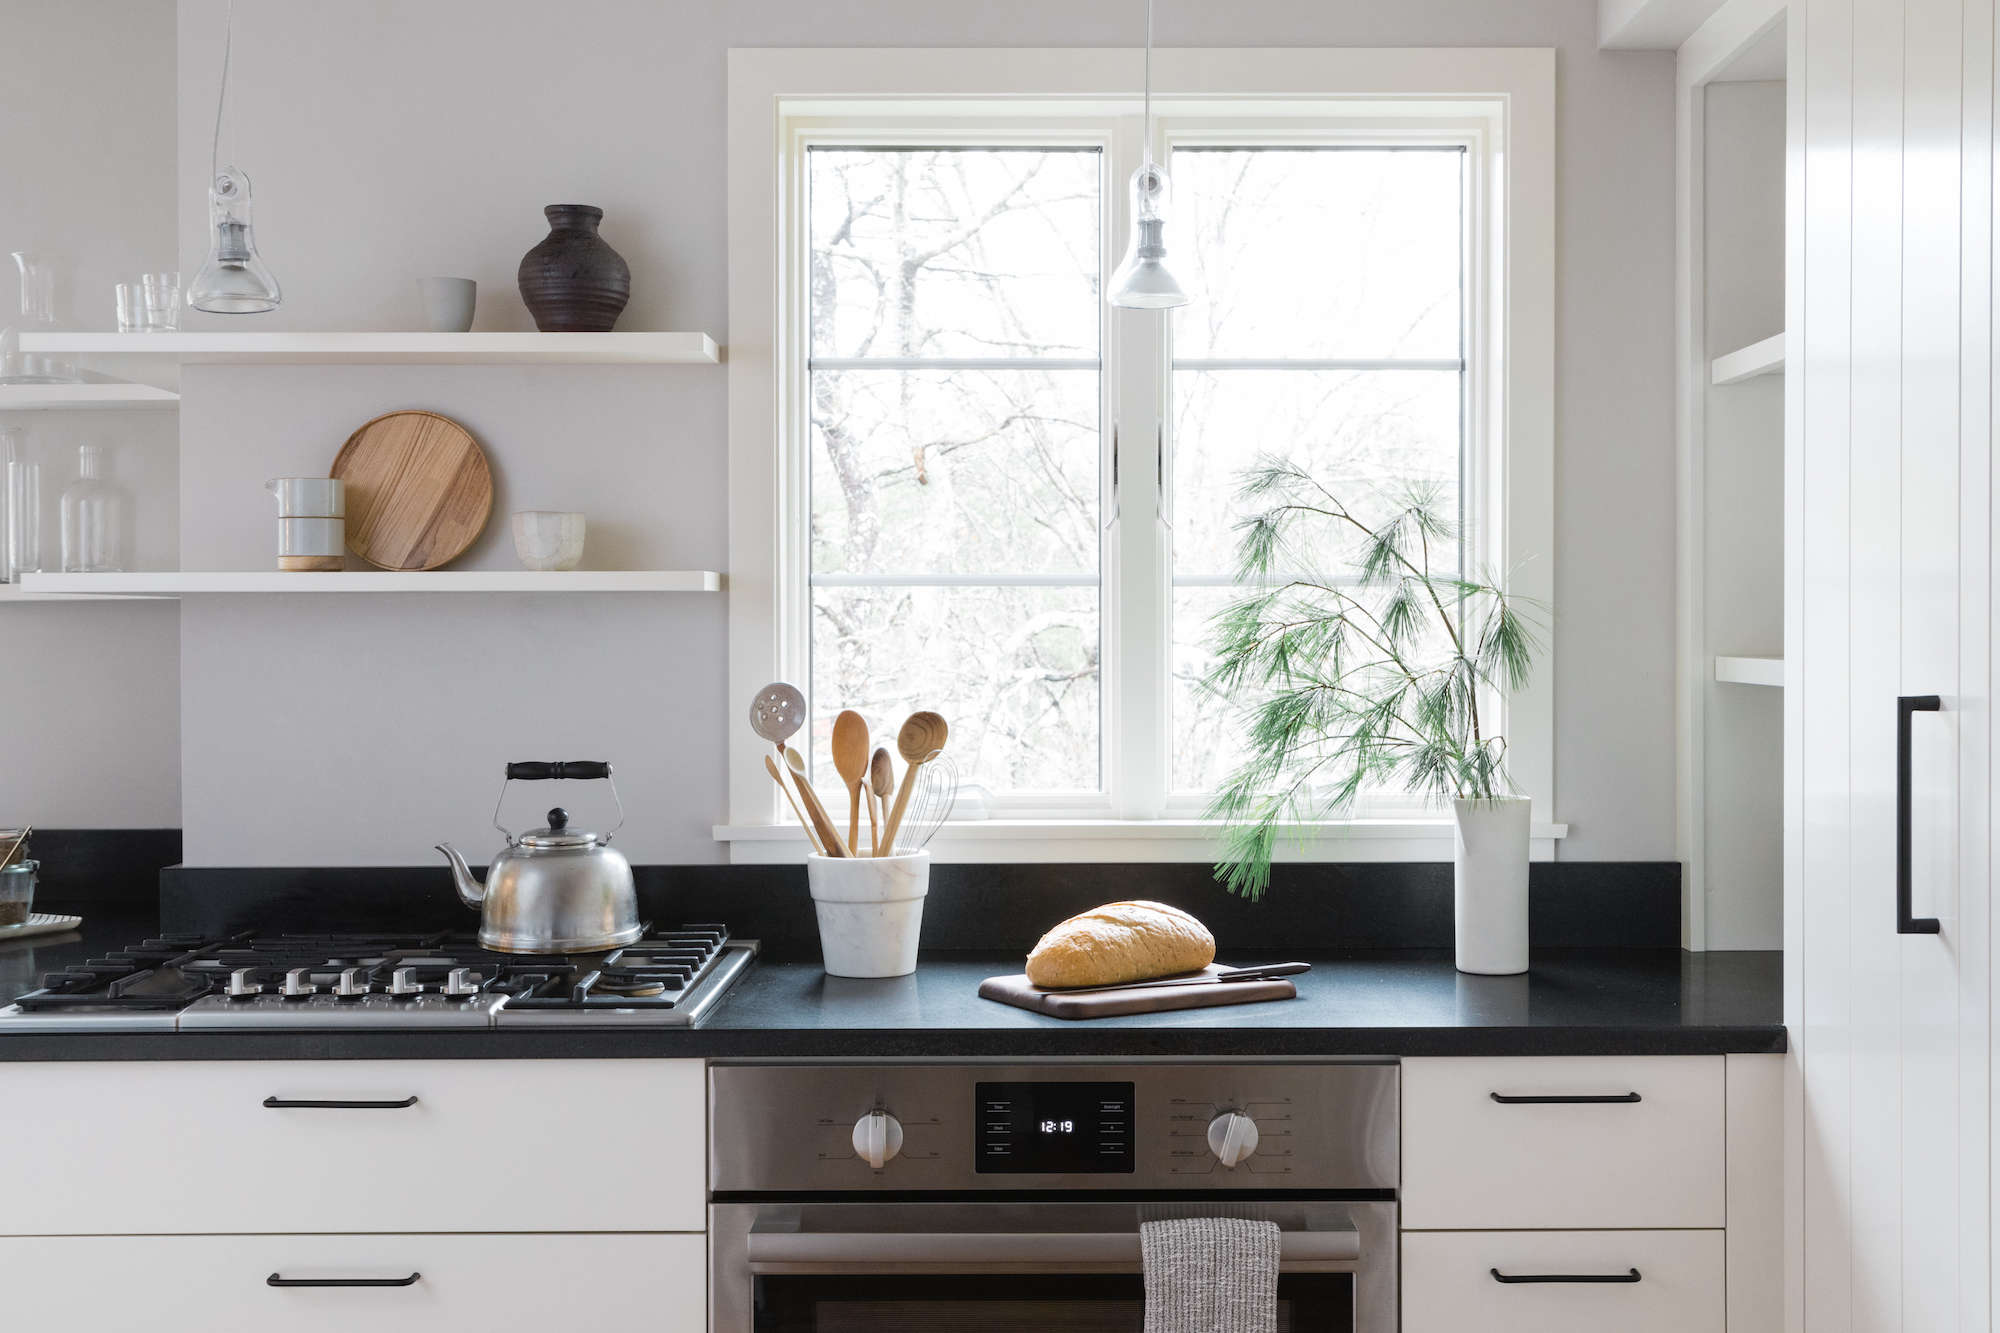 Japanese Kitchen Appliances Sponsored A Japanese Inflected Kitchen With Bosch Home Appliances